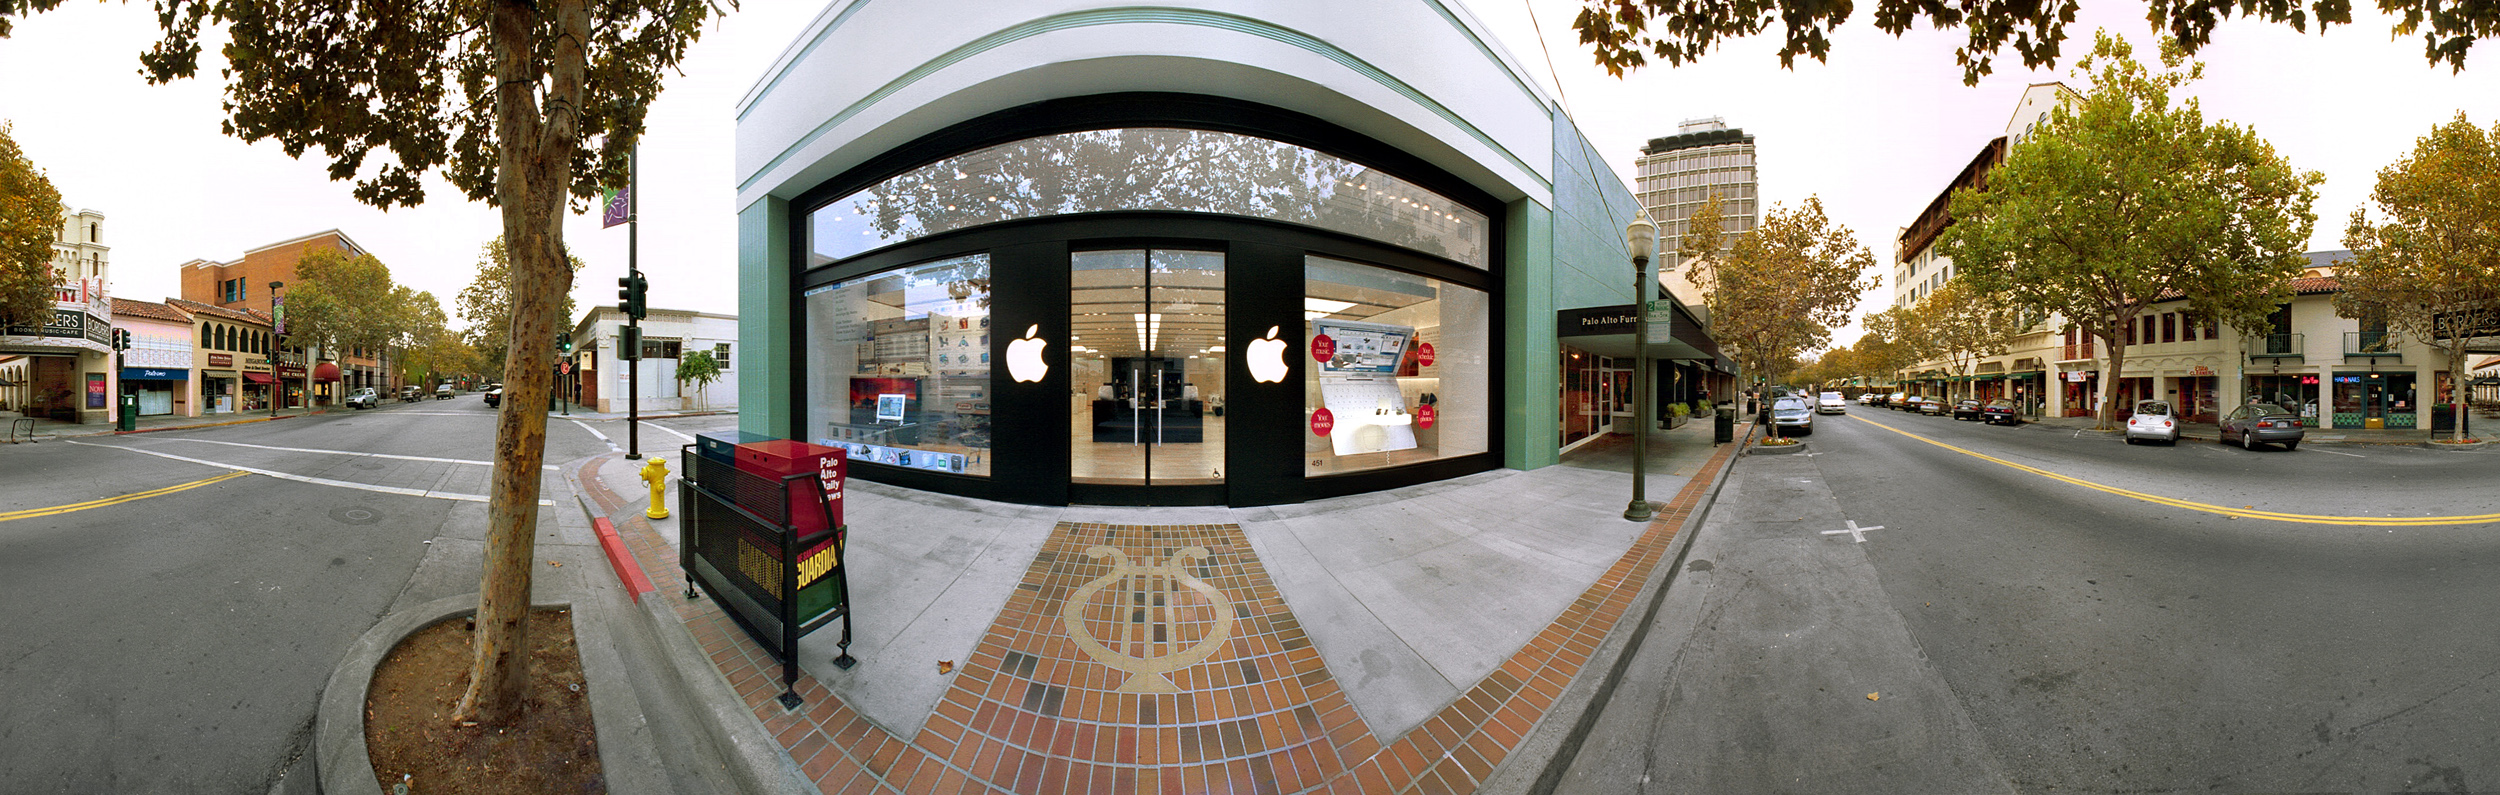 Apple Store, Palo Alto